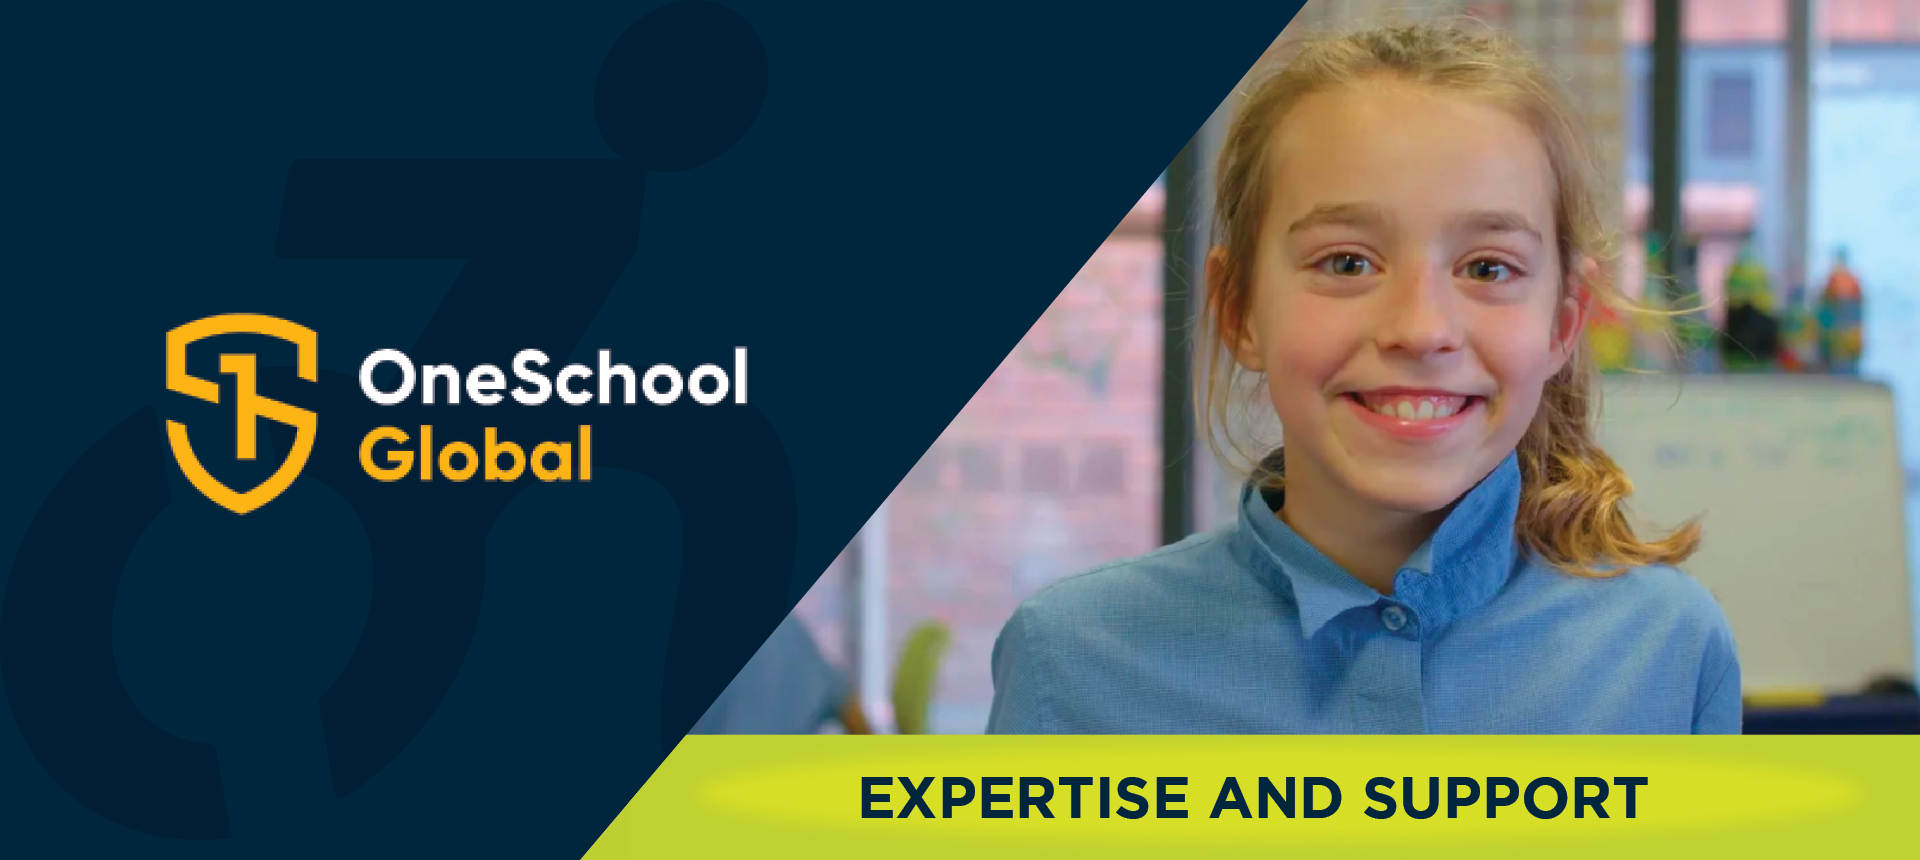 On left side of image, the OneSchool Global logo. On right side of the image, a caucasian, blond child student smiling while wearing a blue school uniform button up shirt, in a school classroom. Underneath, the image reads: EXPERTISE AND SUPPORT